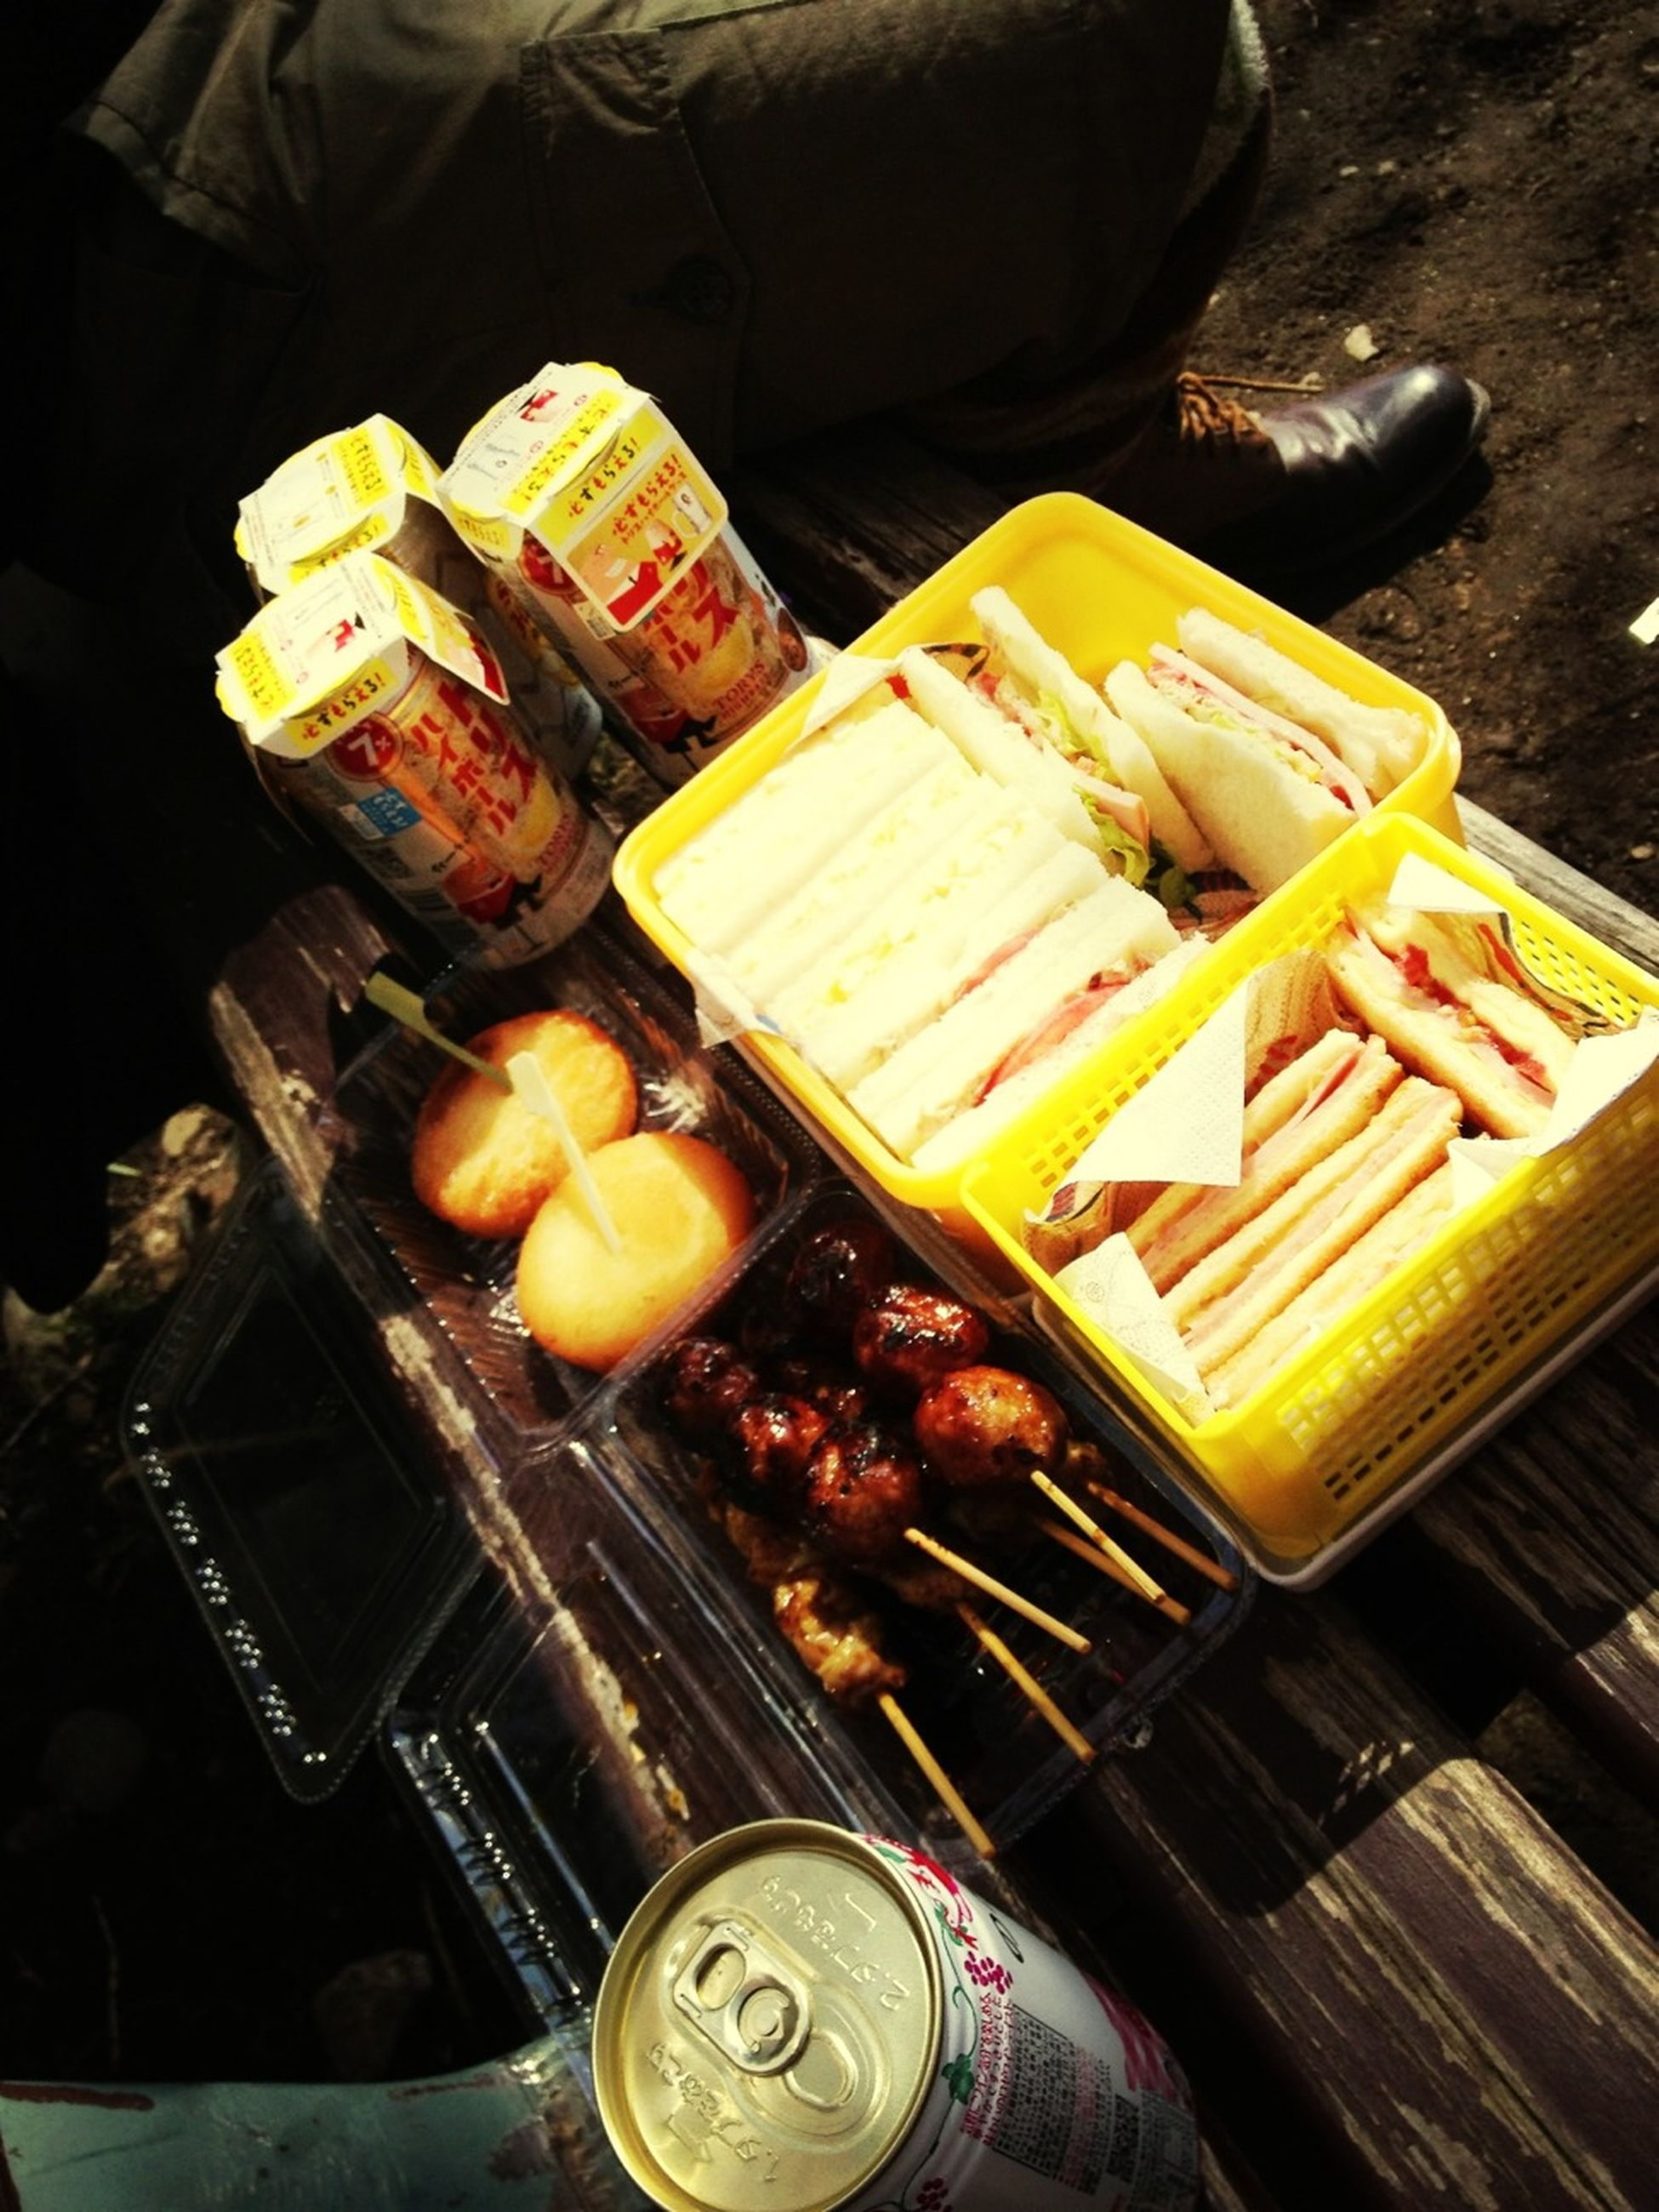 food and drink, food, freshness, indoors, high angle view, healthy eating, still life, meat, cooking, preparation, heat - temperature, preparing food, table, grilled, ready-to-eat, close-up, variation, barbecue grill, indulgence, container